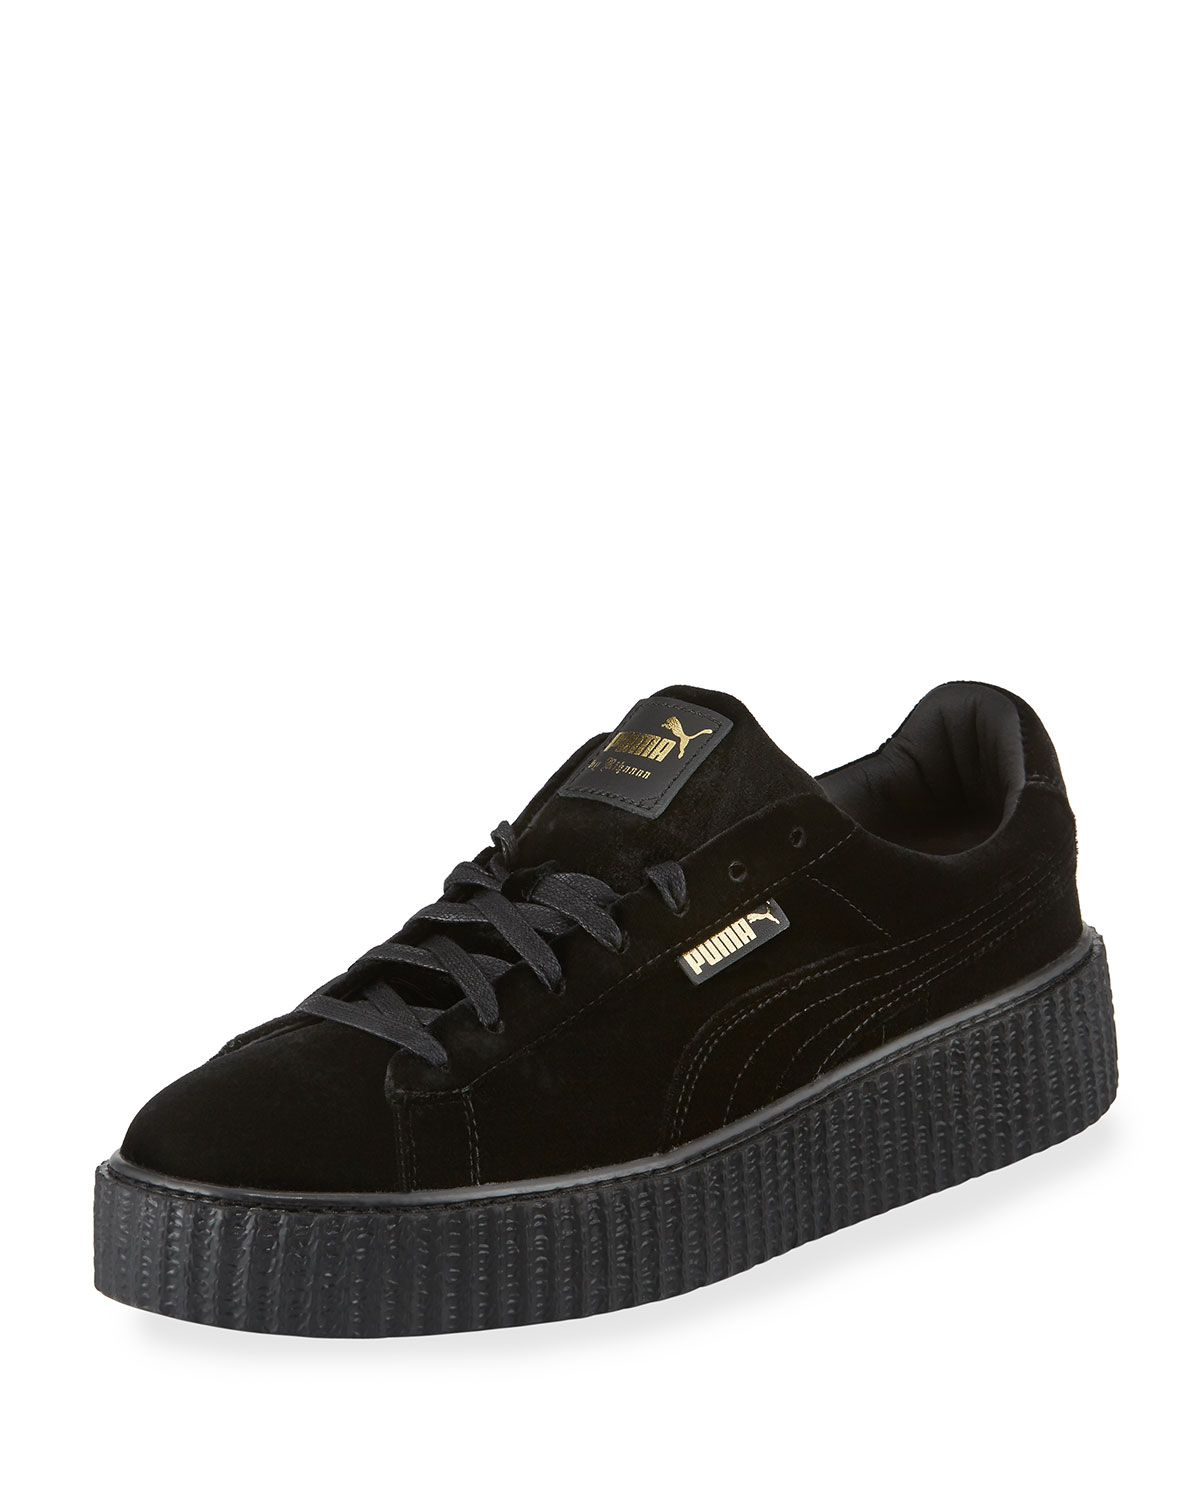 hot sale online ed60d cedee Men's Velvet Creeper Sneakers, Black